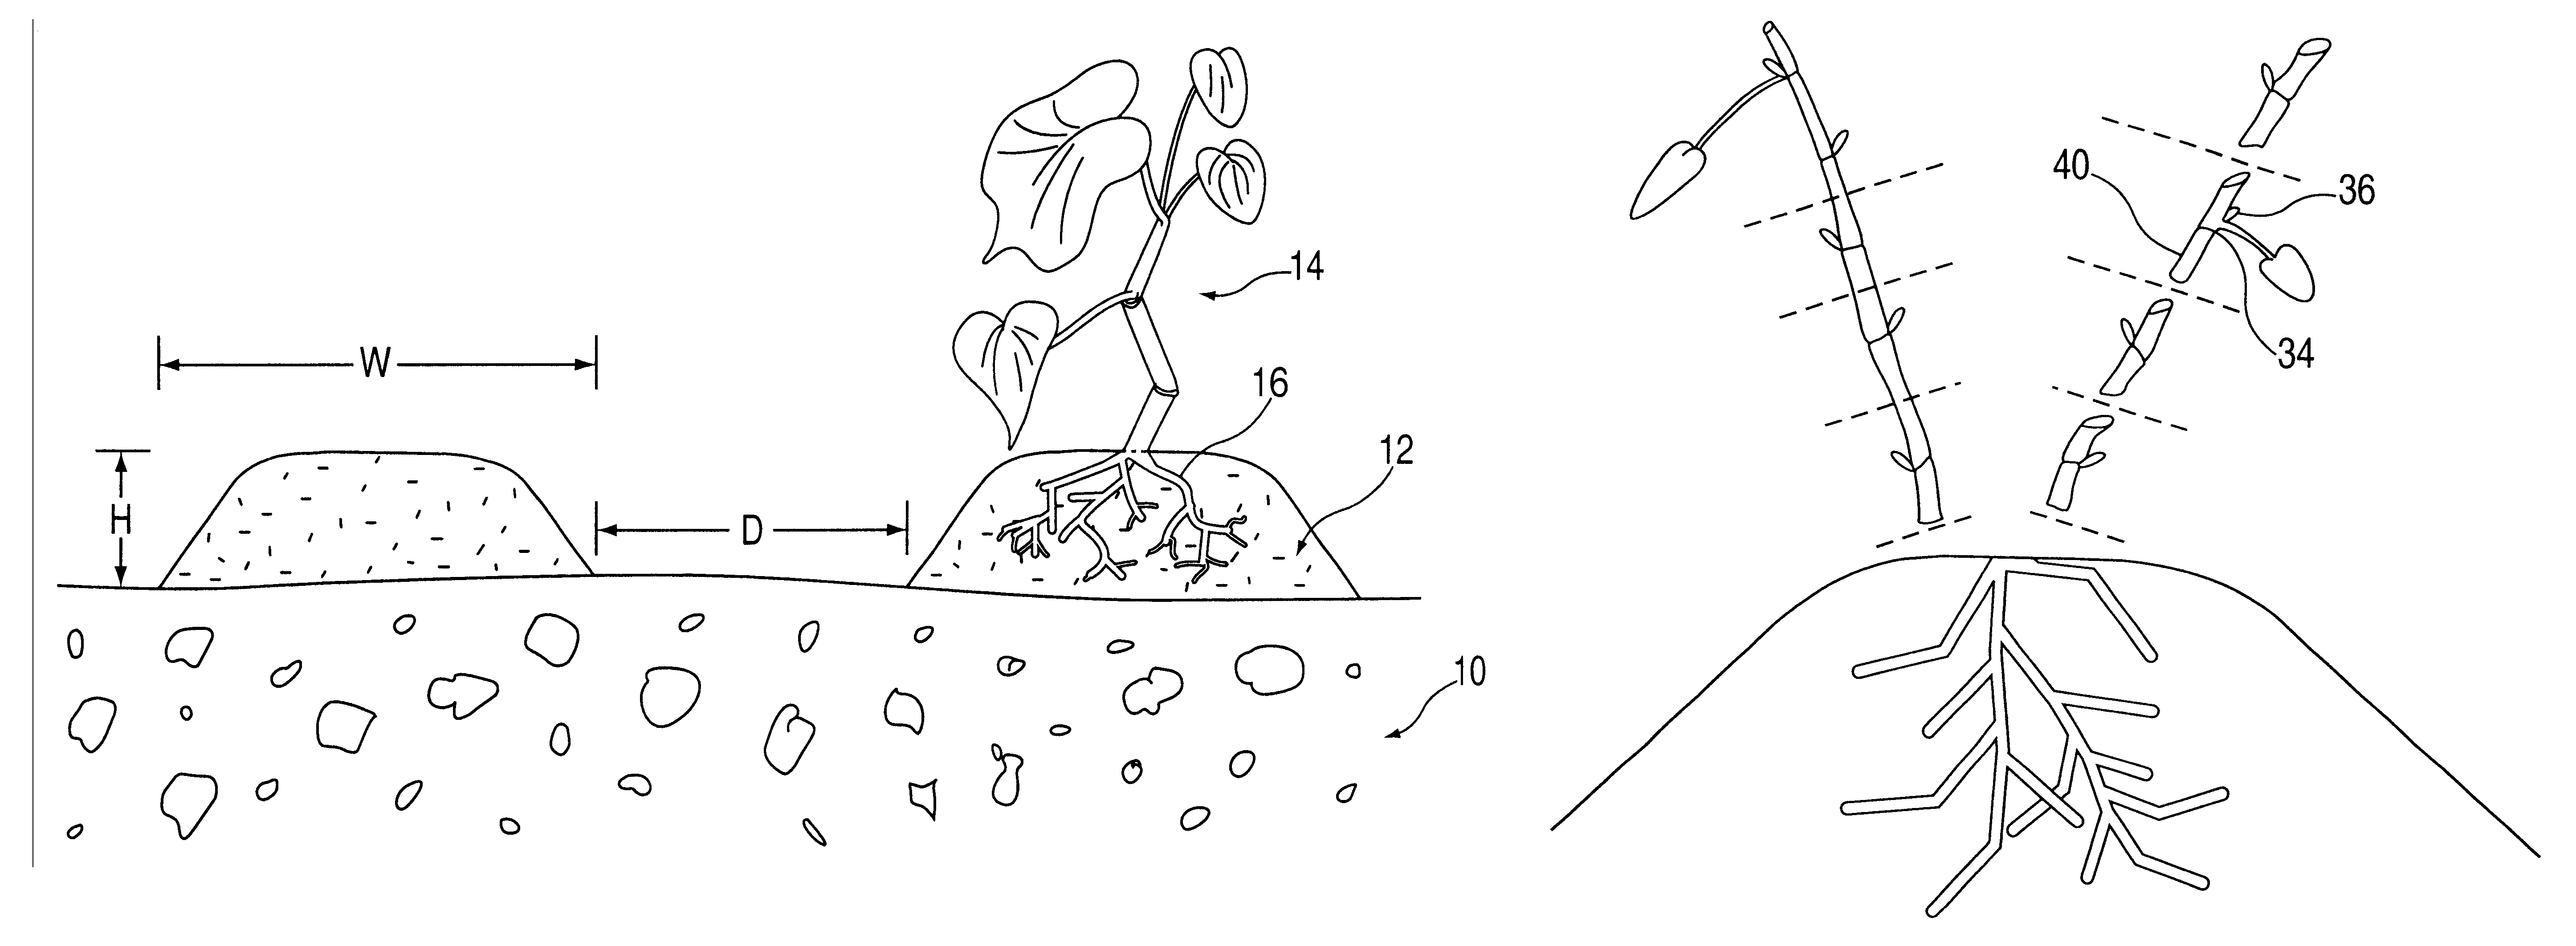 Drawing of a piper methysticum plant